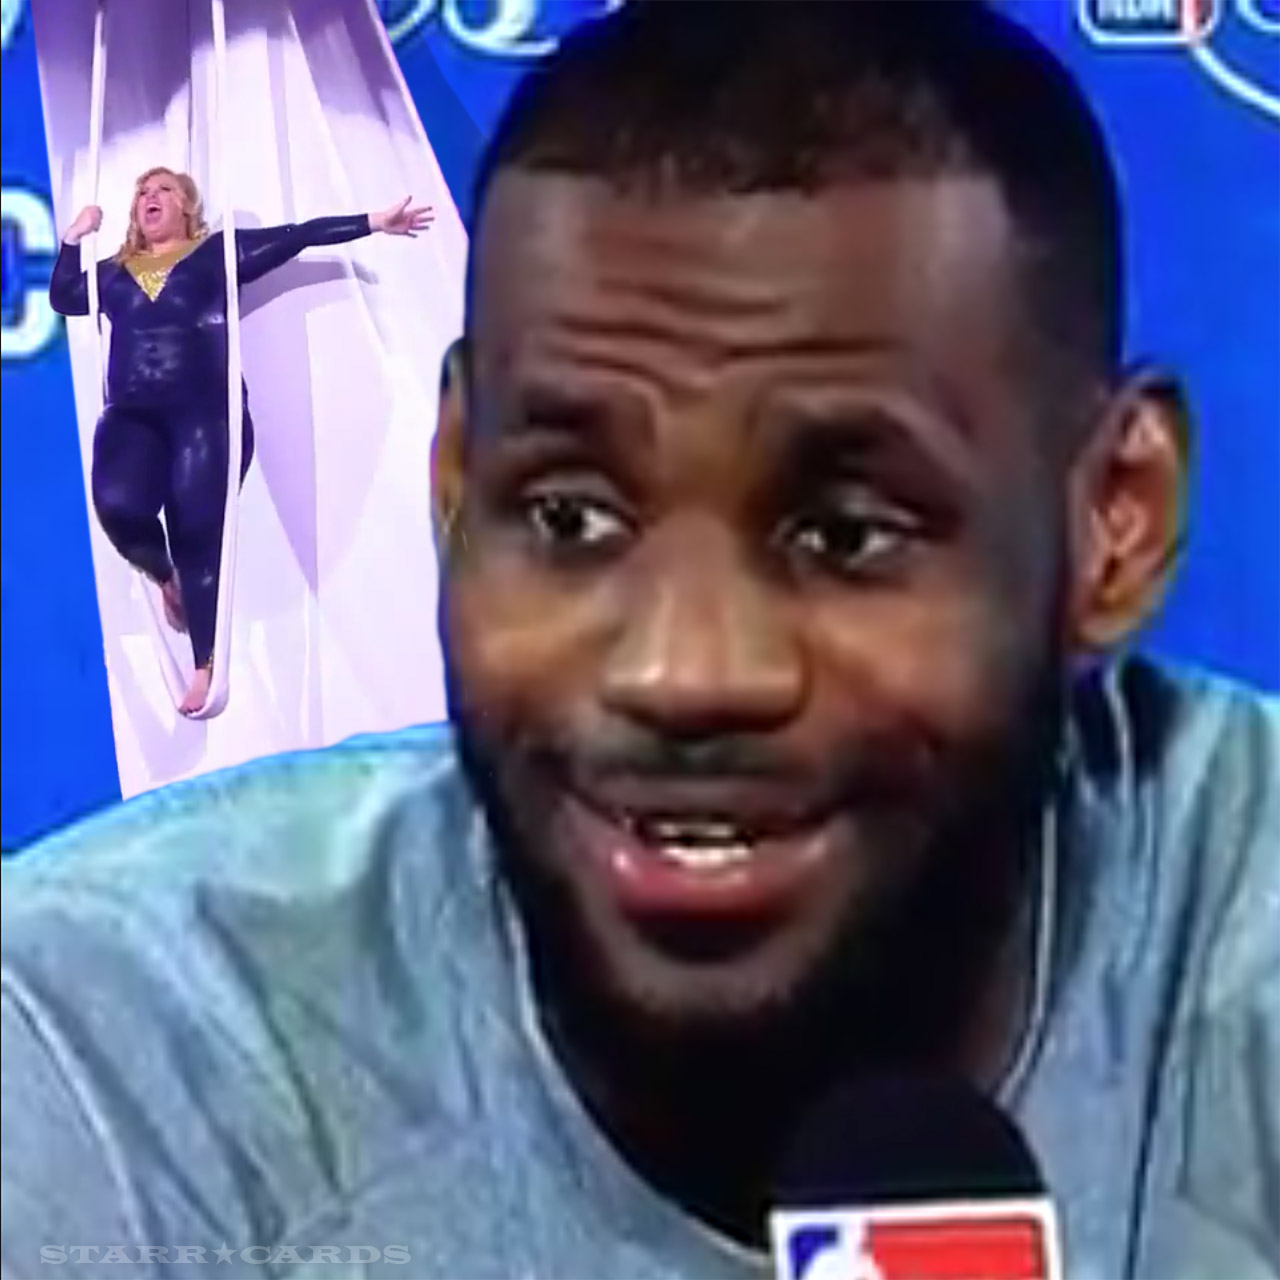 LeBron James likes Fat Amy from 'Pitch Perfect 2'